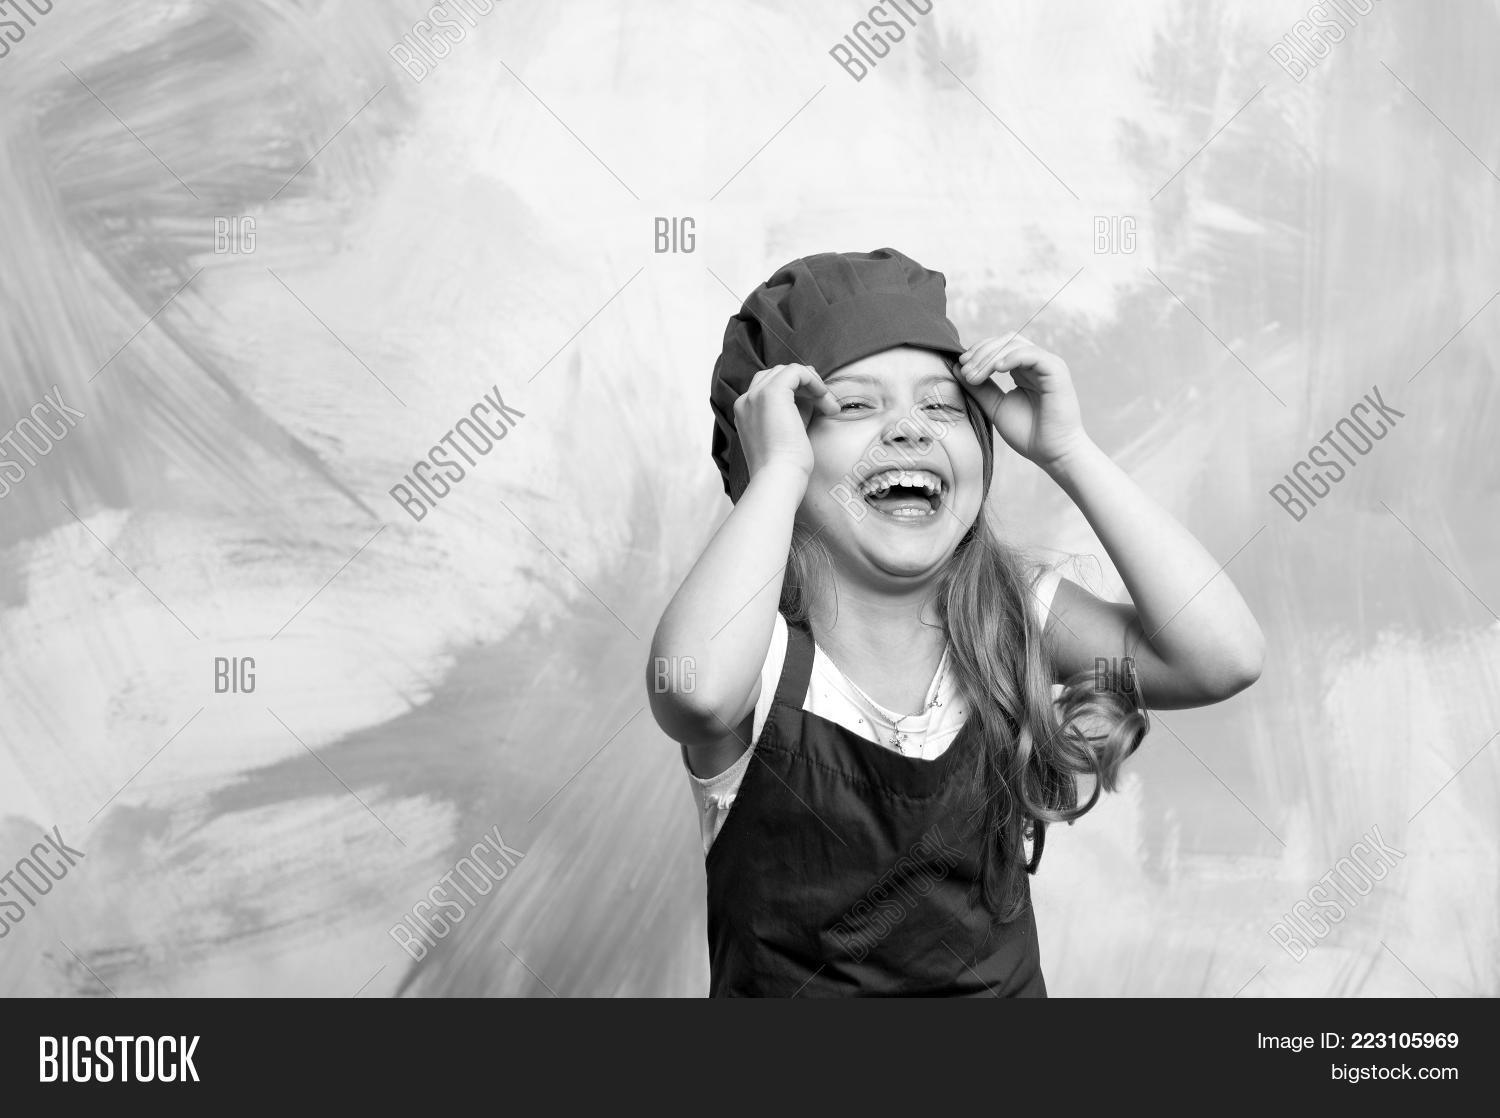 46cdaa36c71 small baby girl or cute child with happy face in red chef hat and cook apron  on colorful abstract background